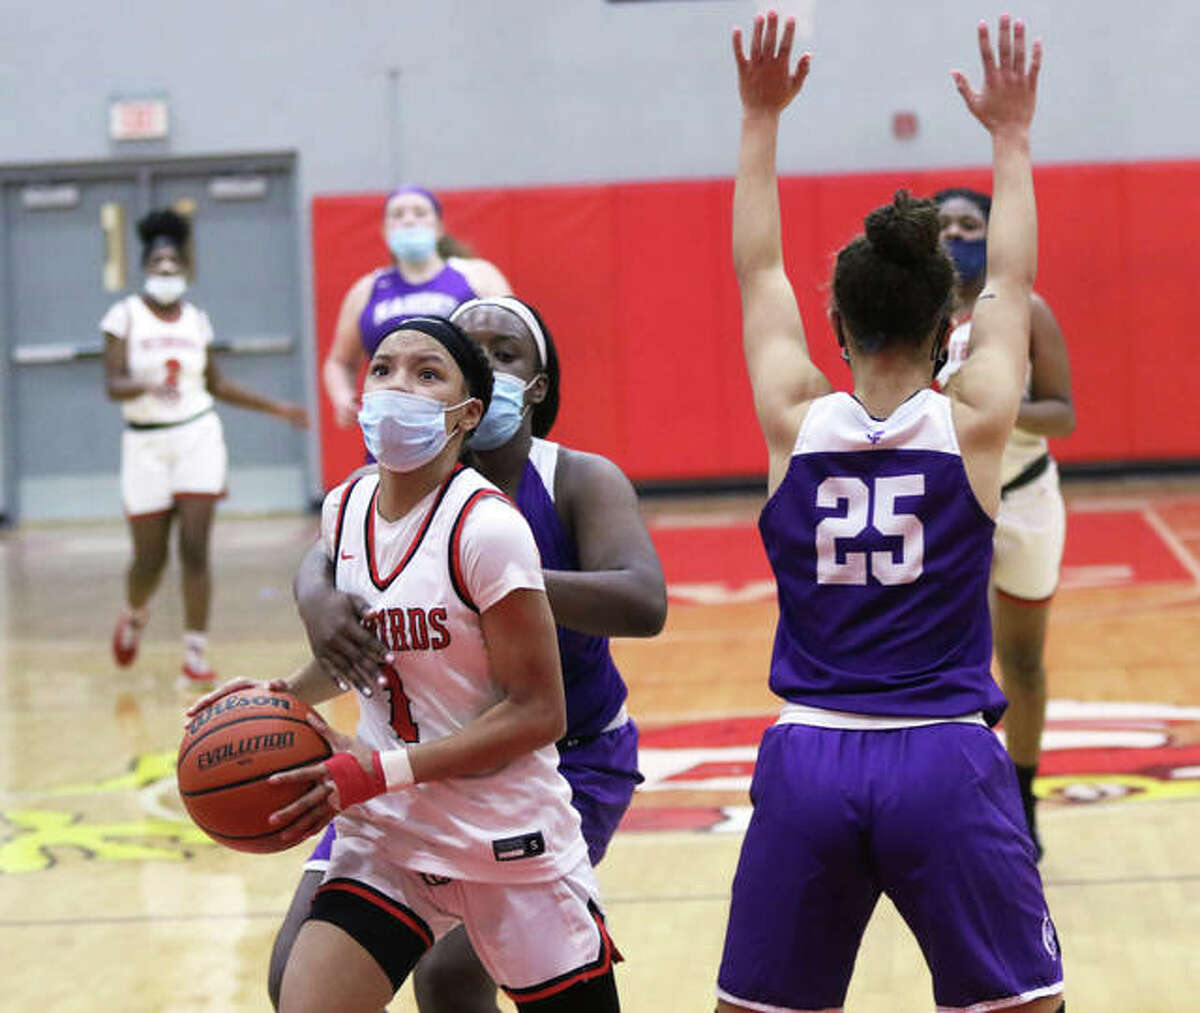 Alton's Khaliyah Goree (1) slips past Collinsville's Jordan Gary (25) and Astacia Bush in a SWC game Tuesday at Alton High in Godfrey. On Thursday, Goree scored 15 points in the Redbirds' SWC victory over East St. Louis.